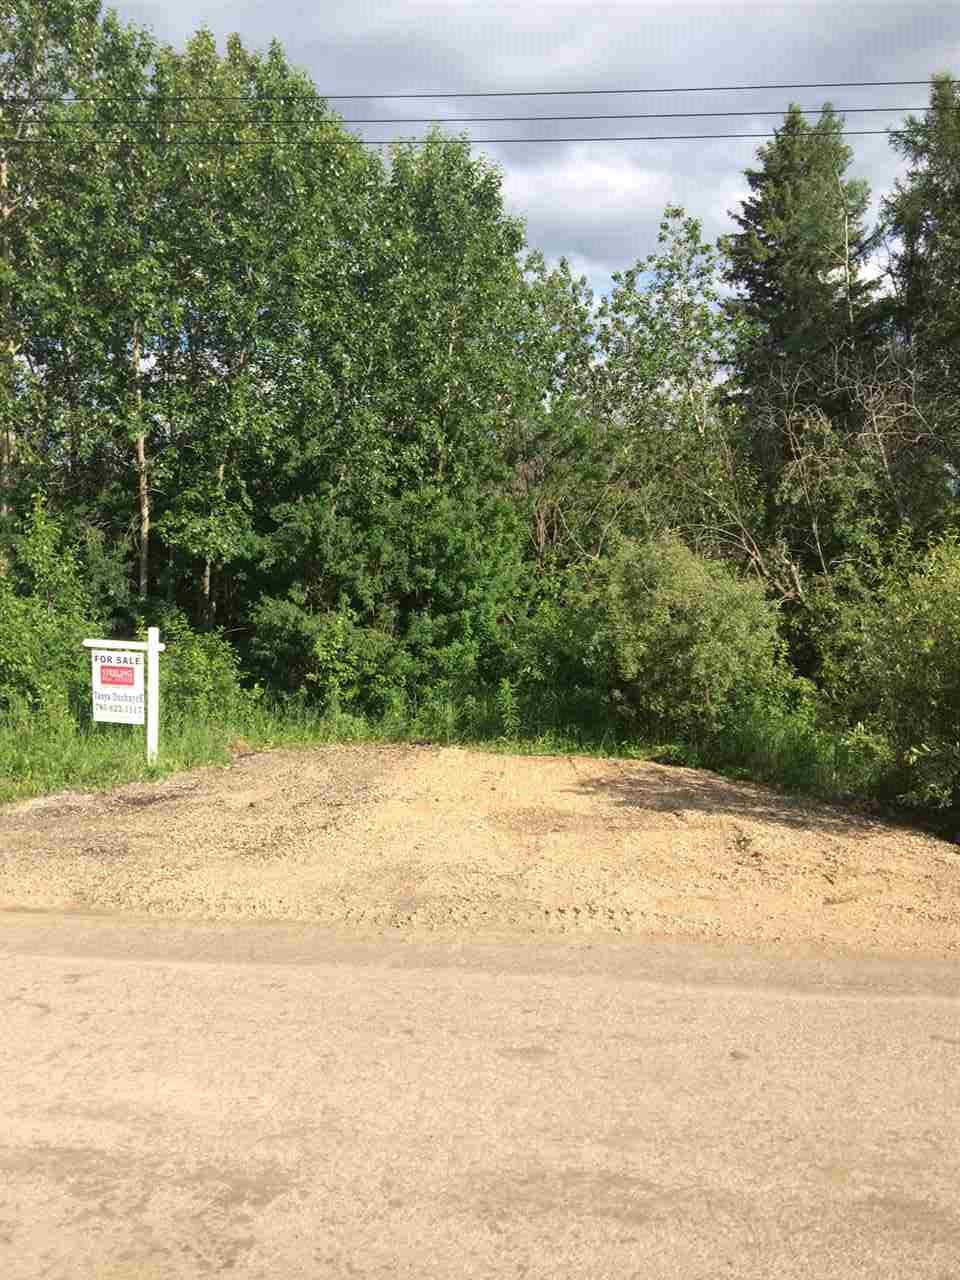 MLS® listing #E4081615 for sale located at Lot 9 Pine Ave Caslan